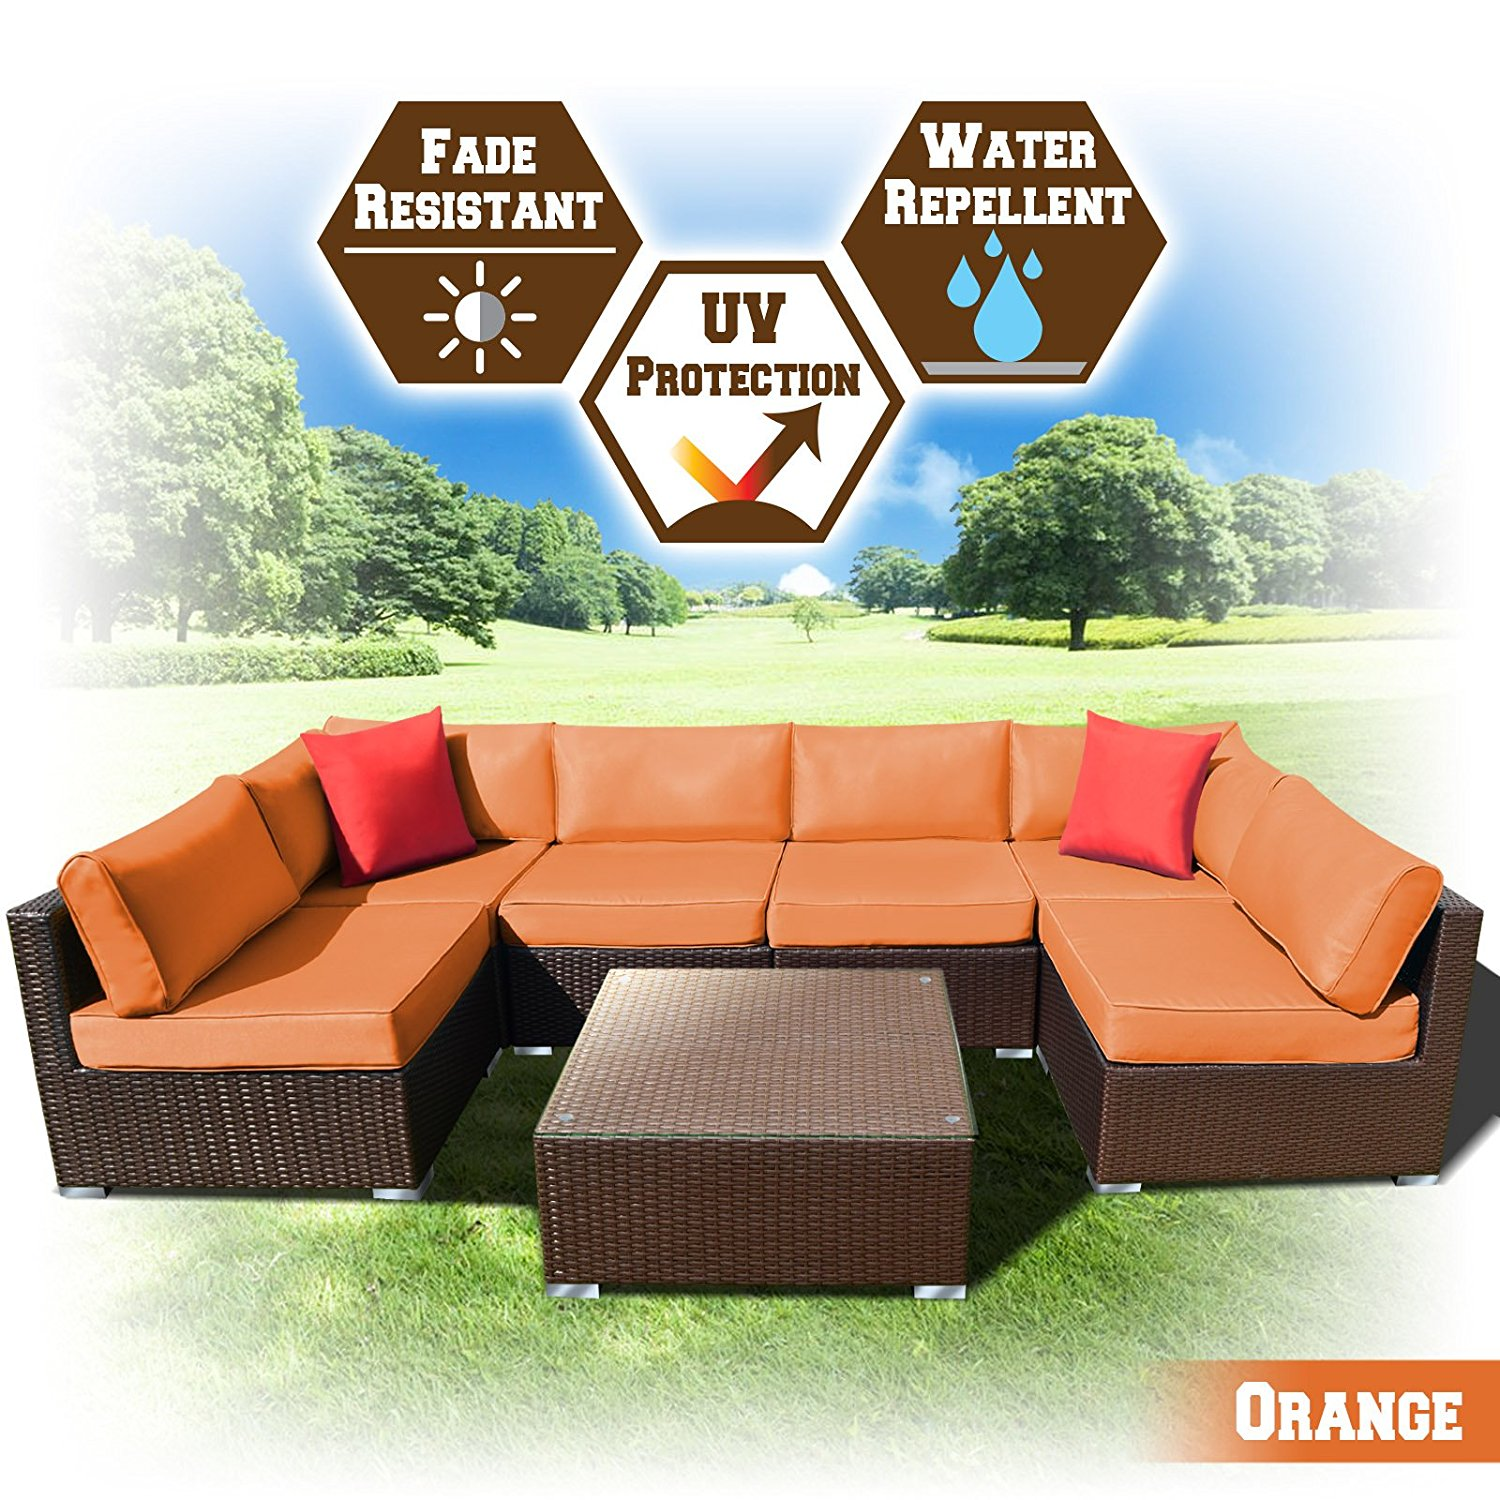 Strong Camel 7 PC Rattan Wicker Patio Set Outdoor Sectional Sofa Furniture With Cushion (Sand)